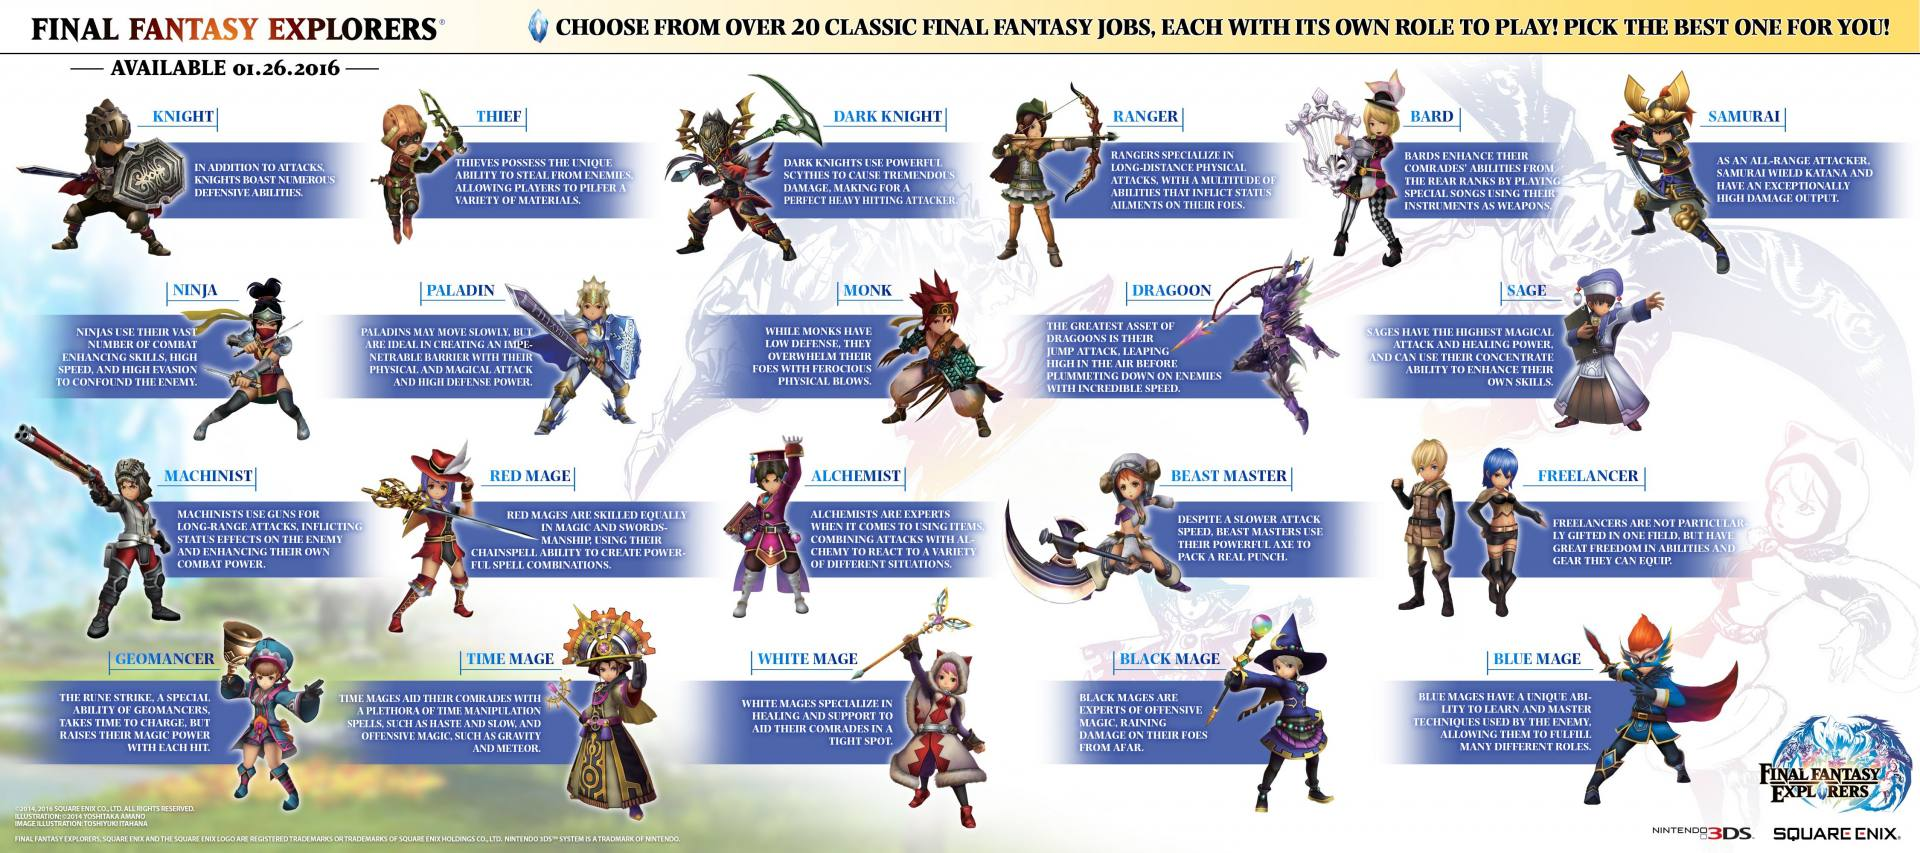 Final Fantasy Explorers 18-11-15 001